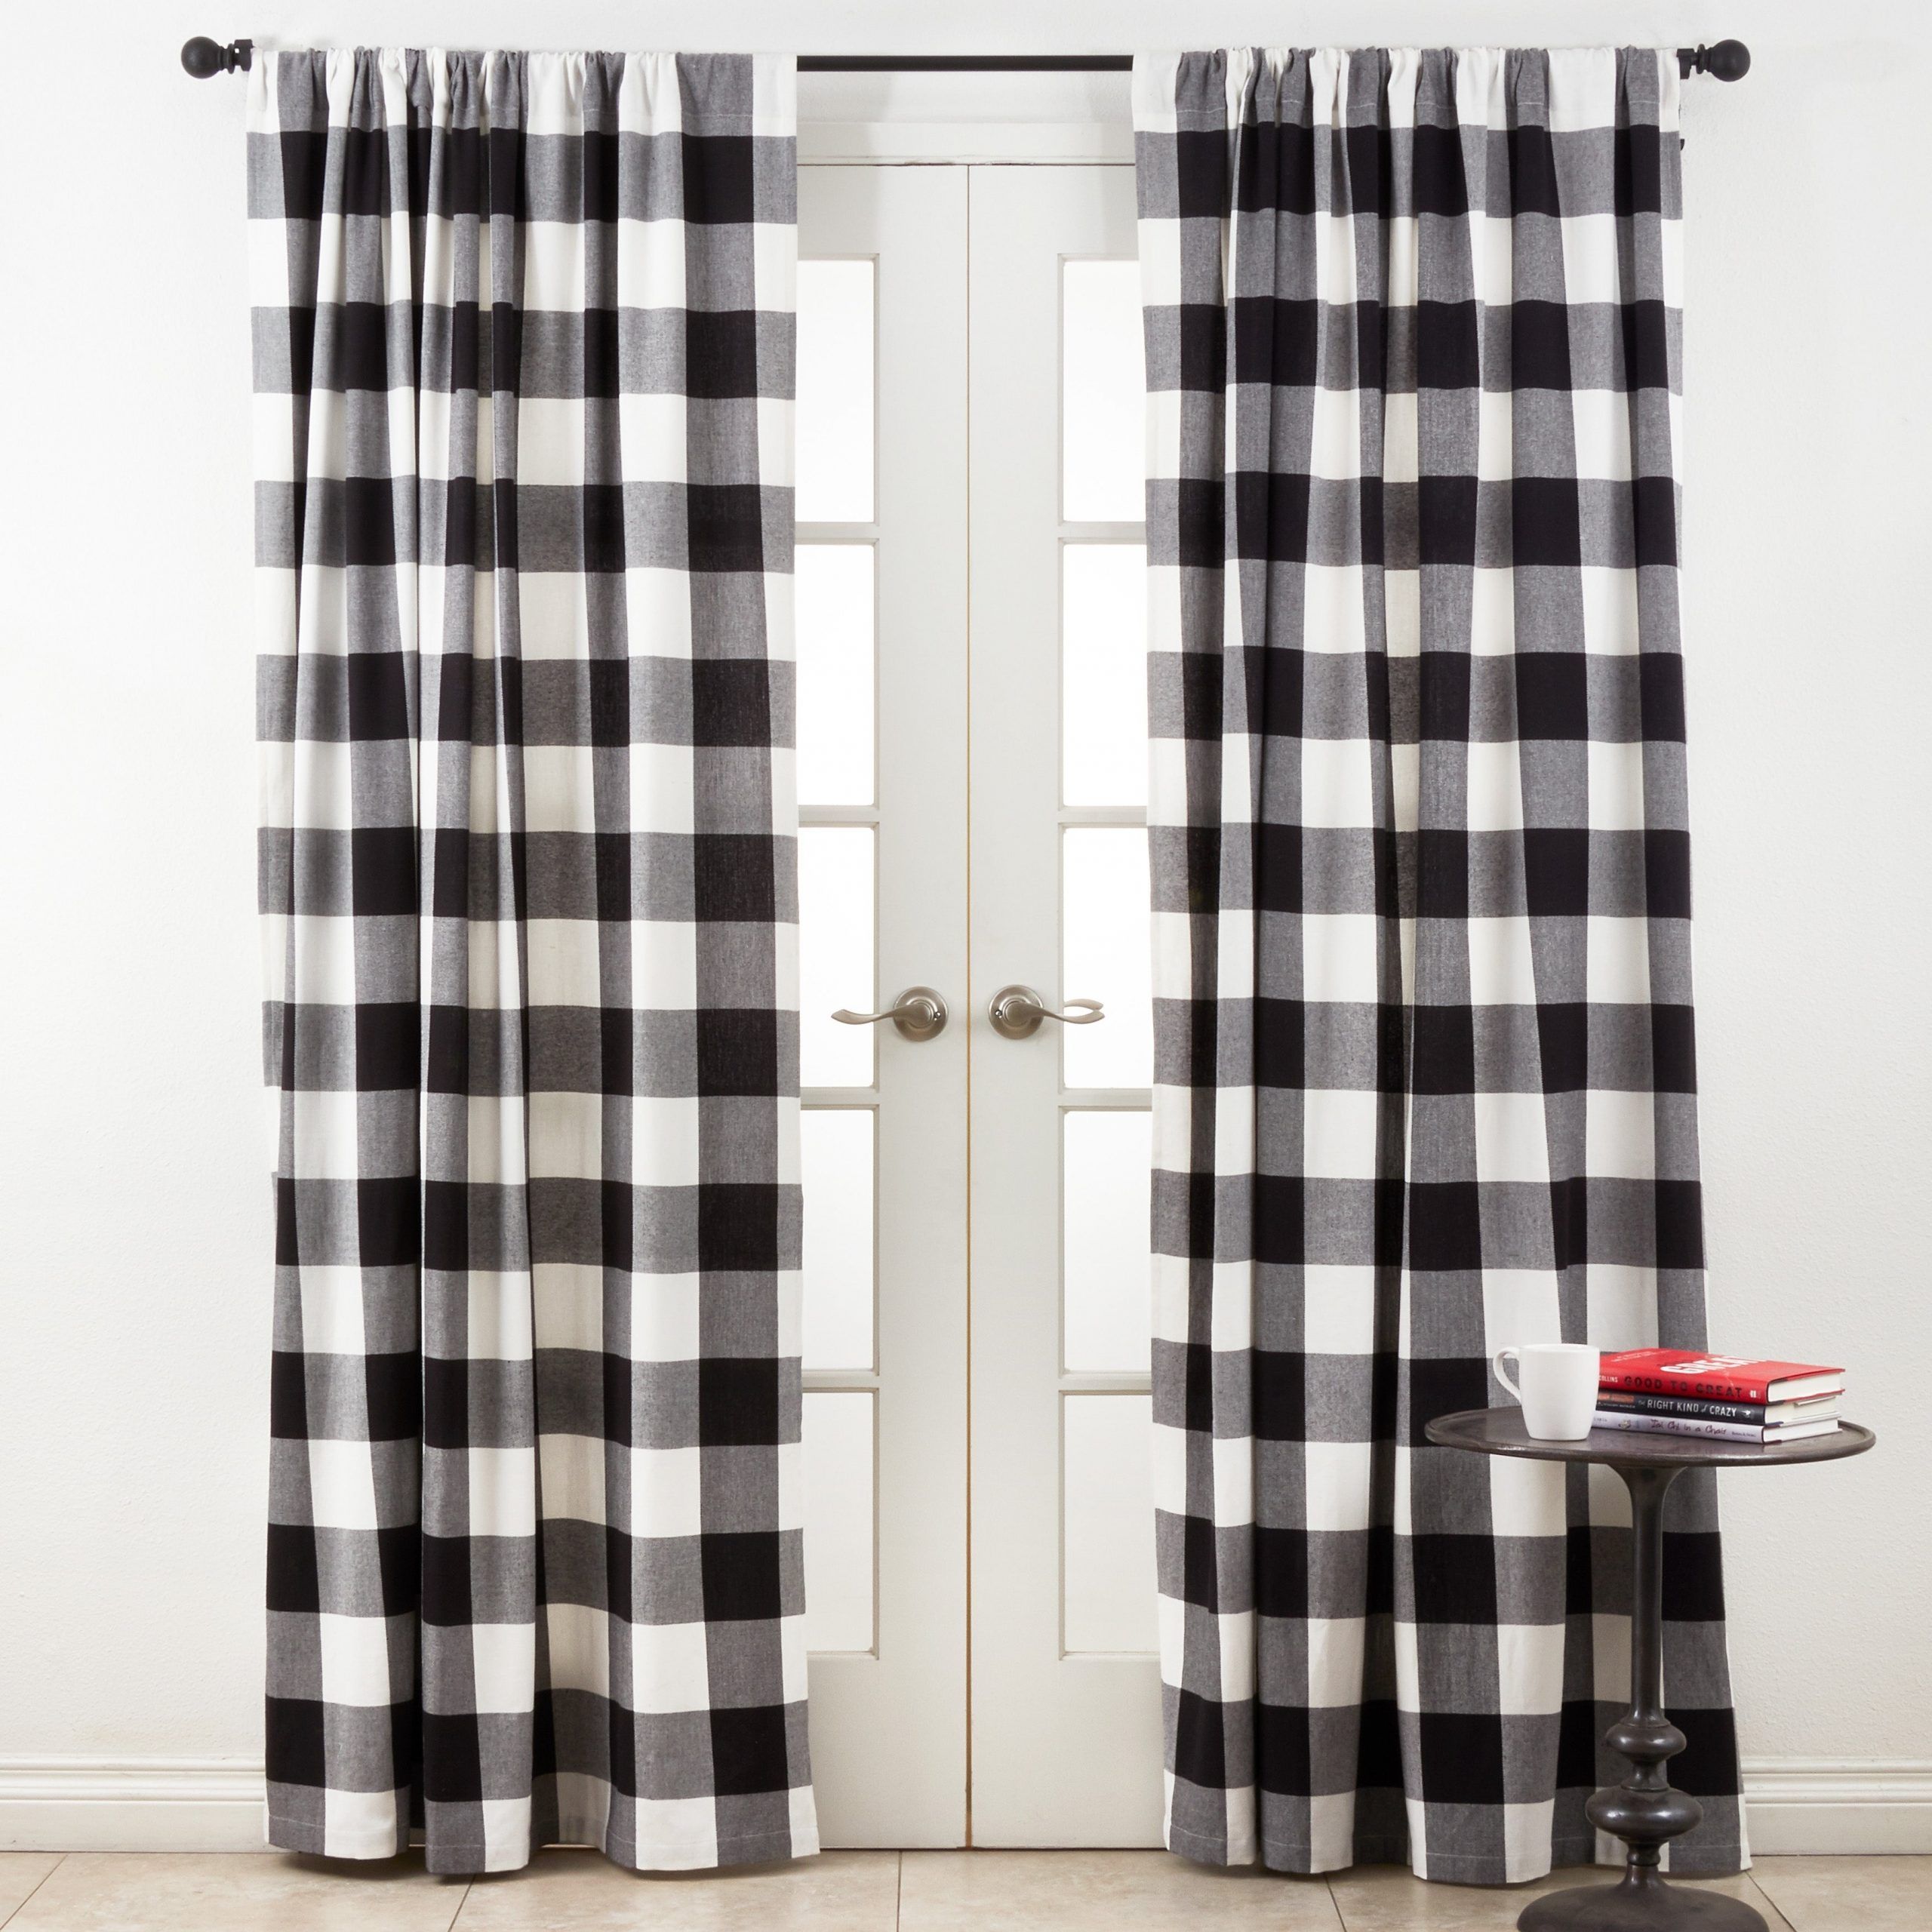 Cotton Buffalo Plaid Curtains Pertaining To Grandin Curtain Valances In Black (View 18 of 20)